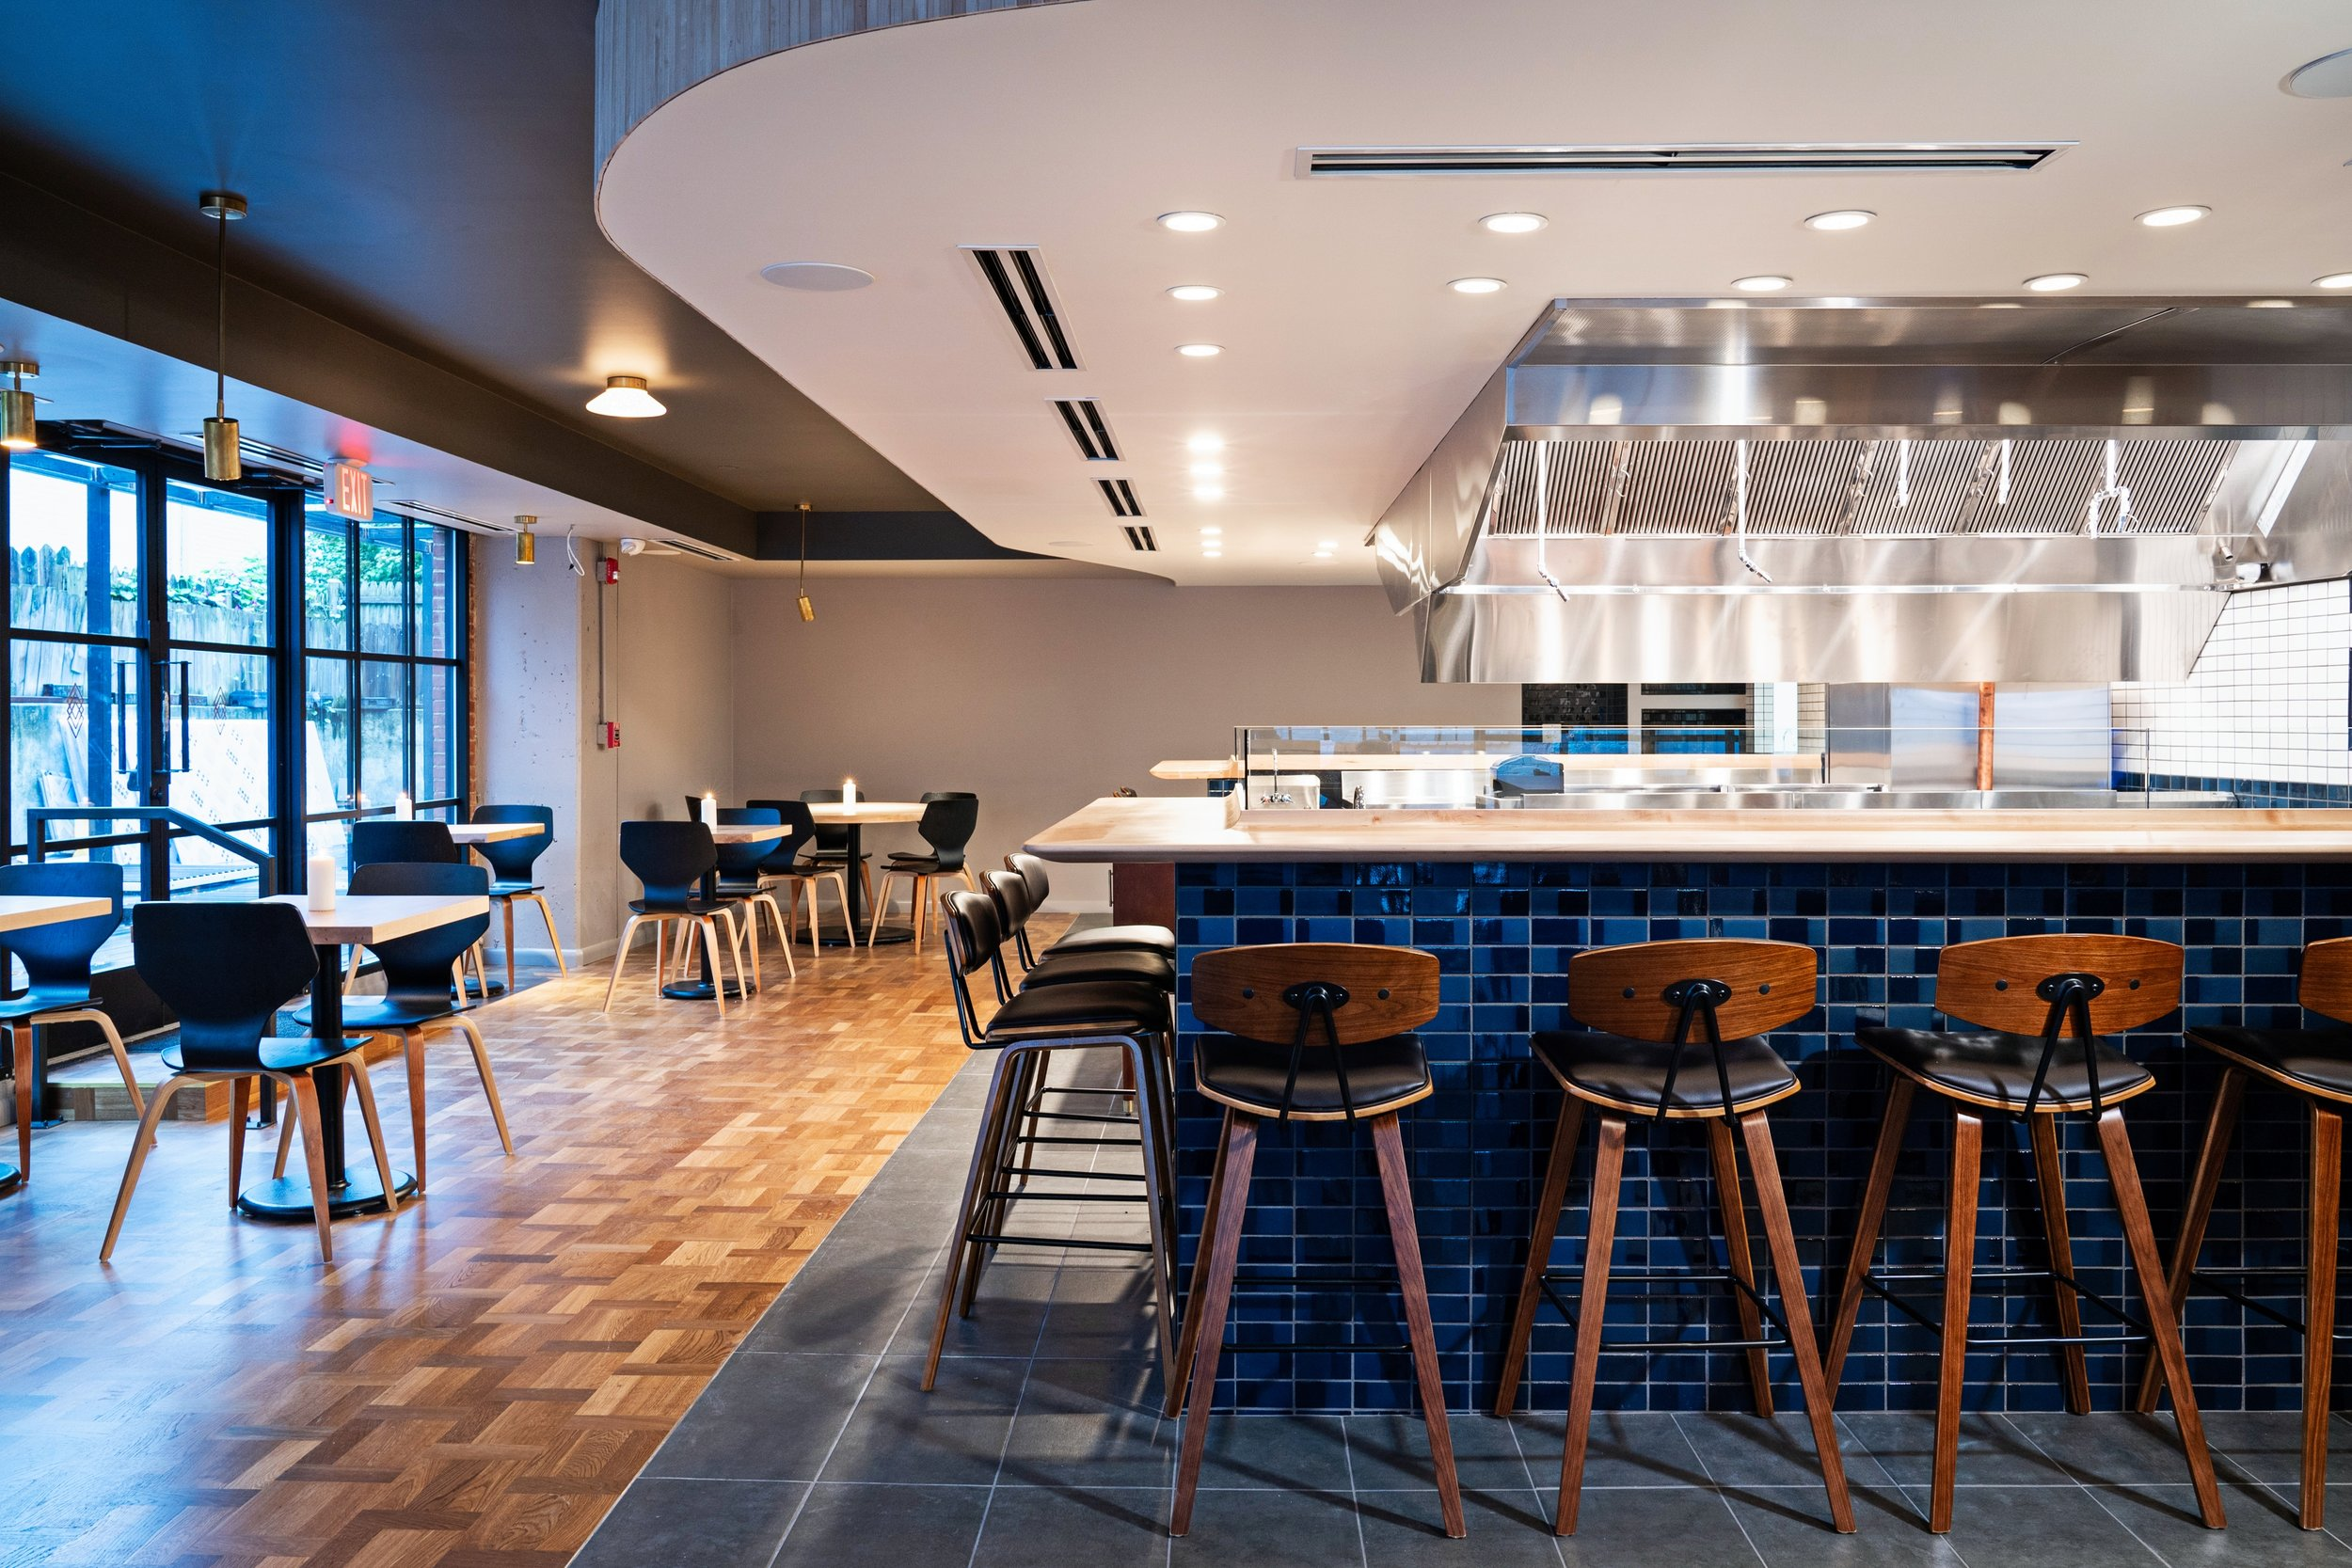 Diners can sit around open kitchen